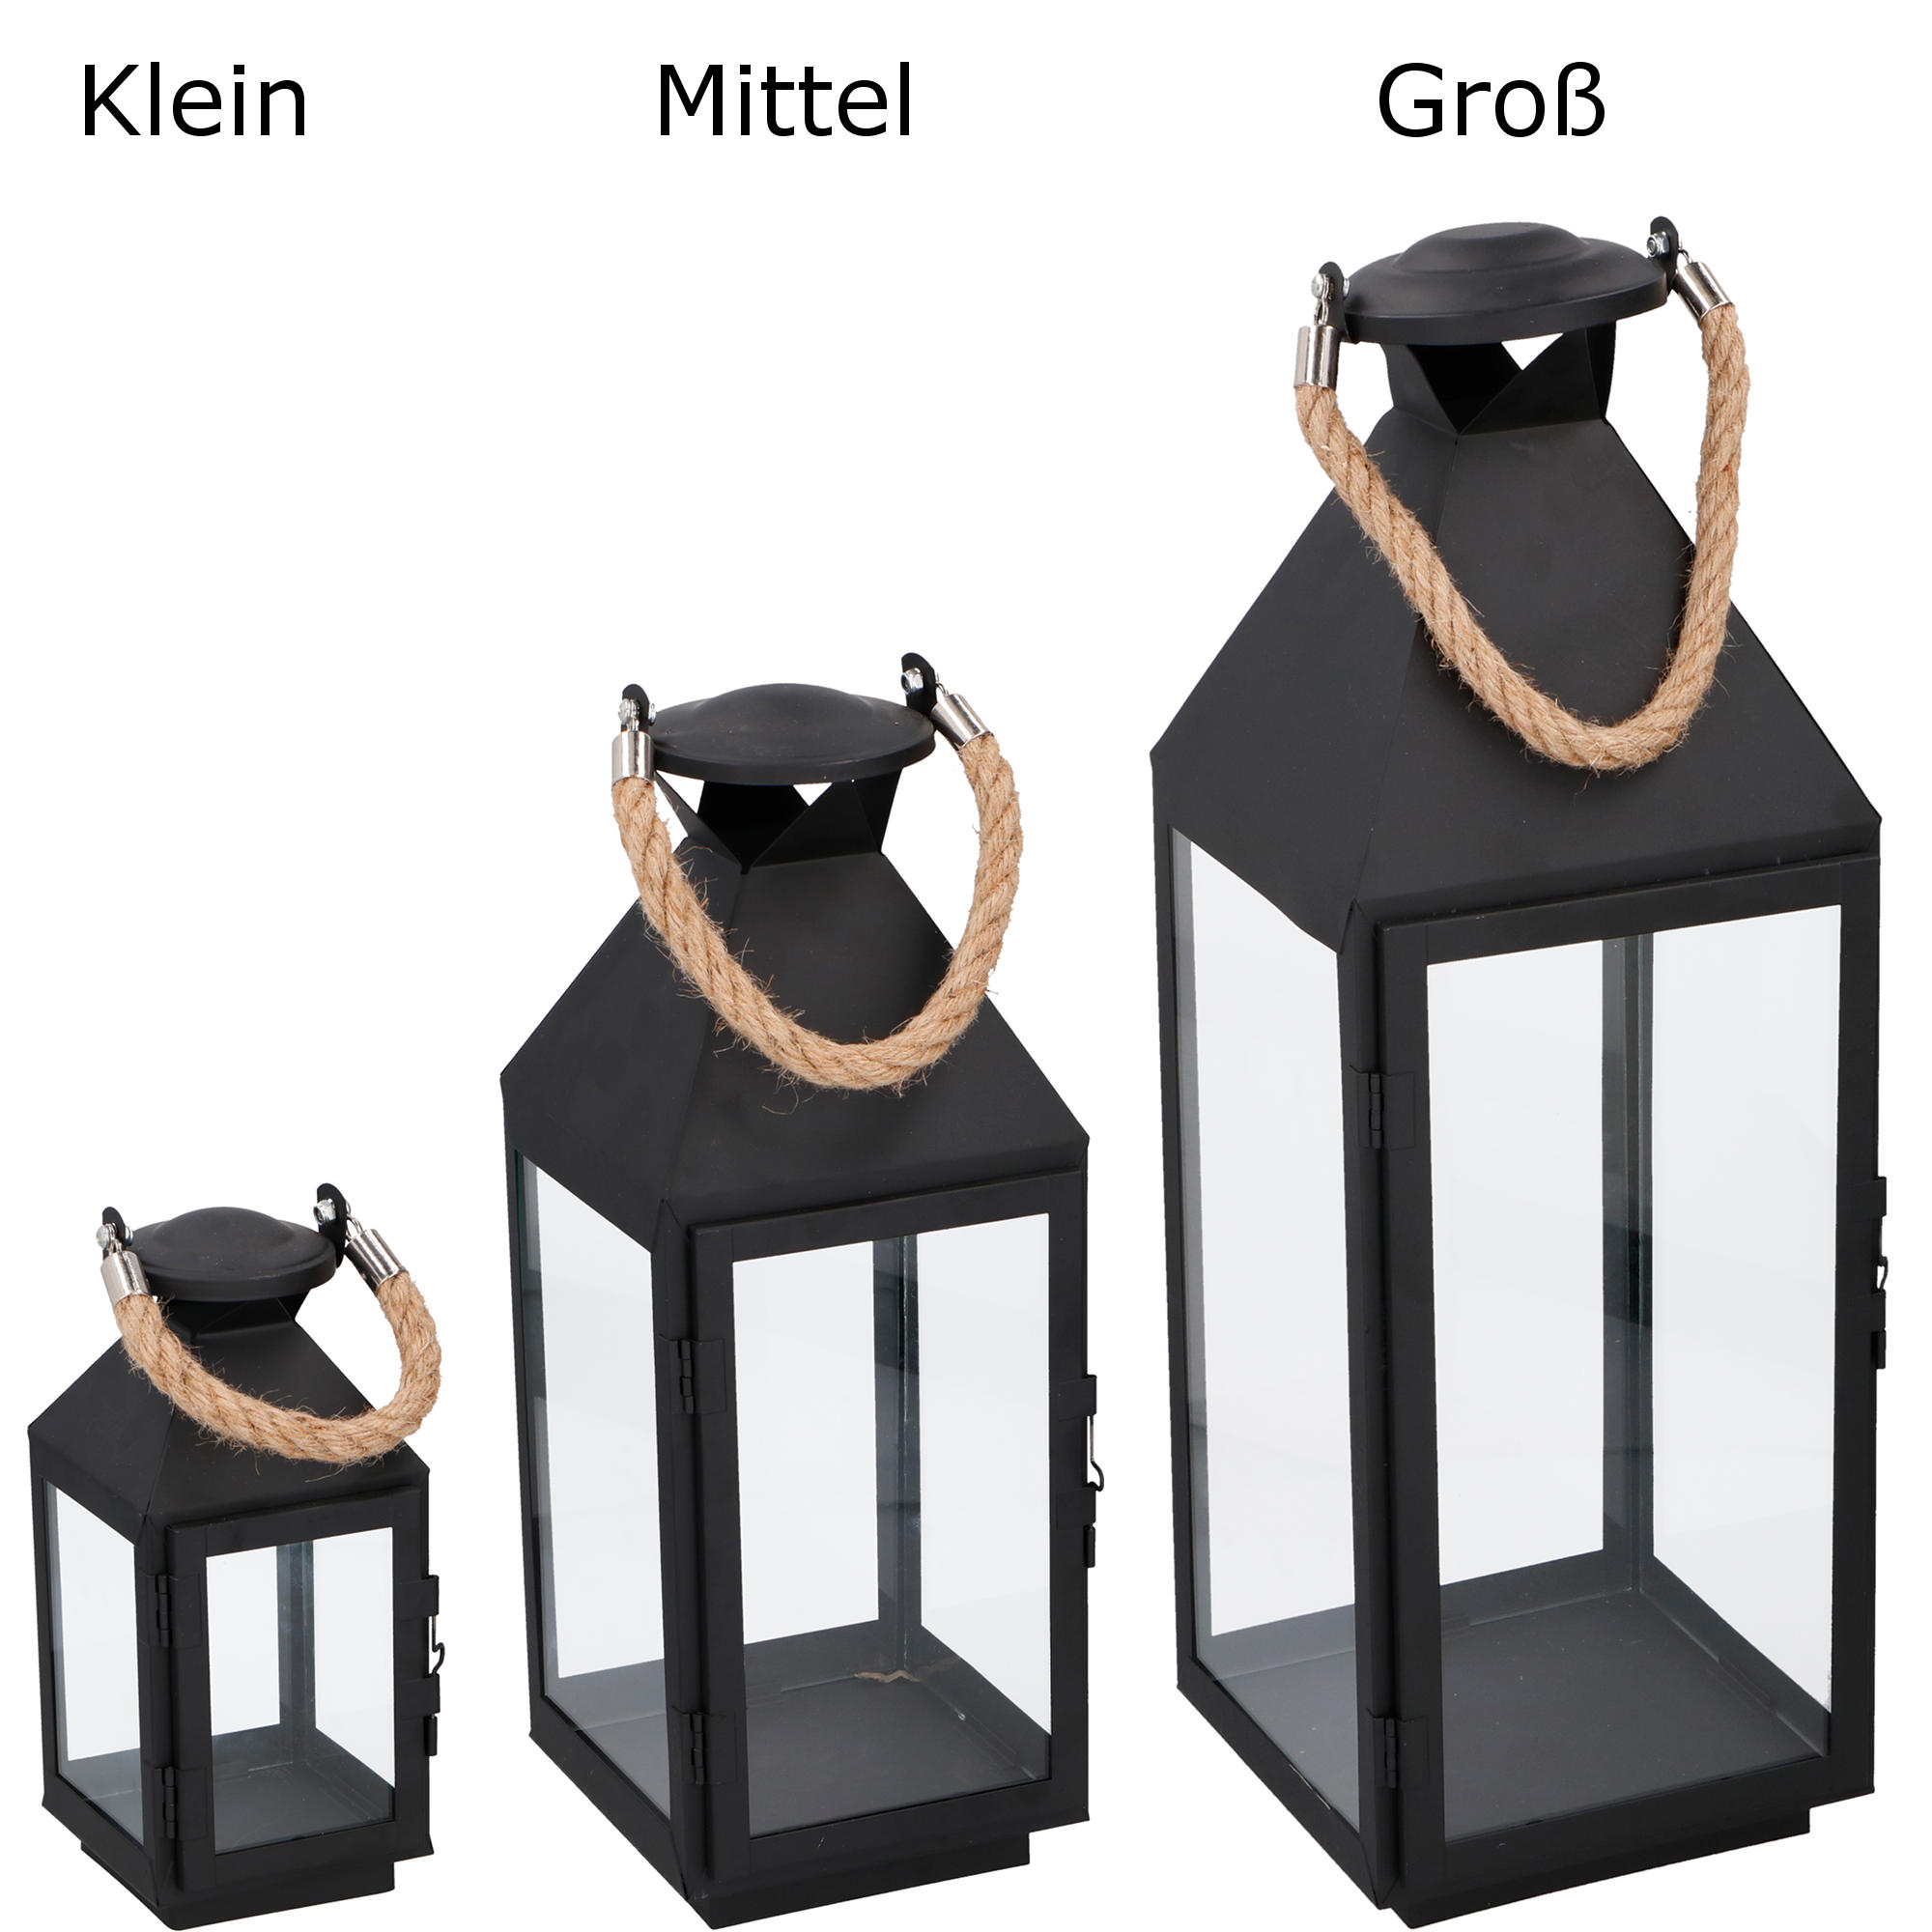 laterne metall 1 windlicht dekoration kerze f r garten terrasse wohnung balkon ebay. Black Bedroom Furniture Sets. Home Design Ideas